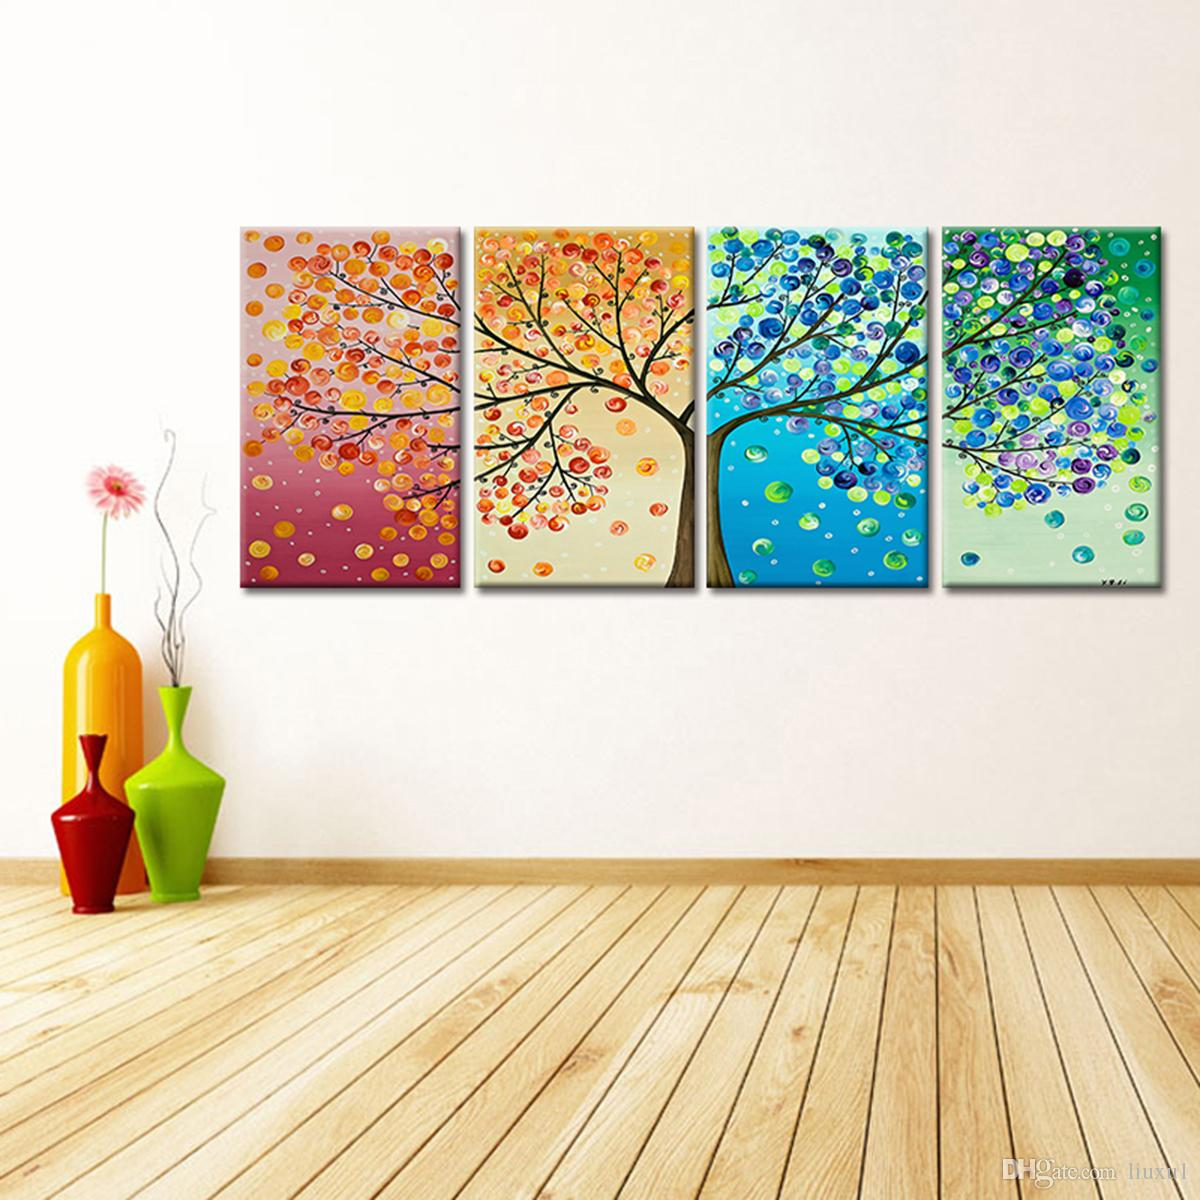 Background Colorful Room: Online Cheap Fashionable Four Seasons Colorful Tree